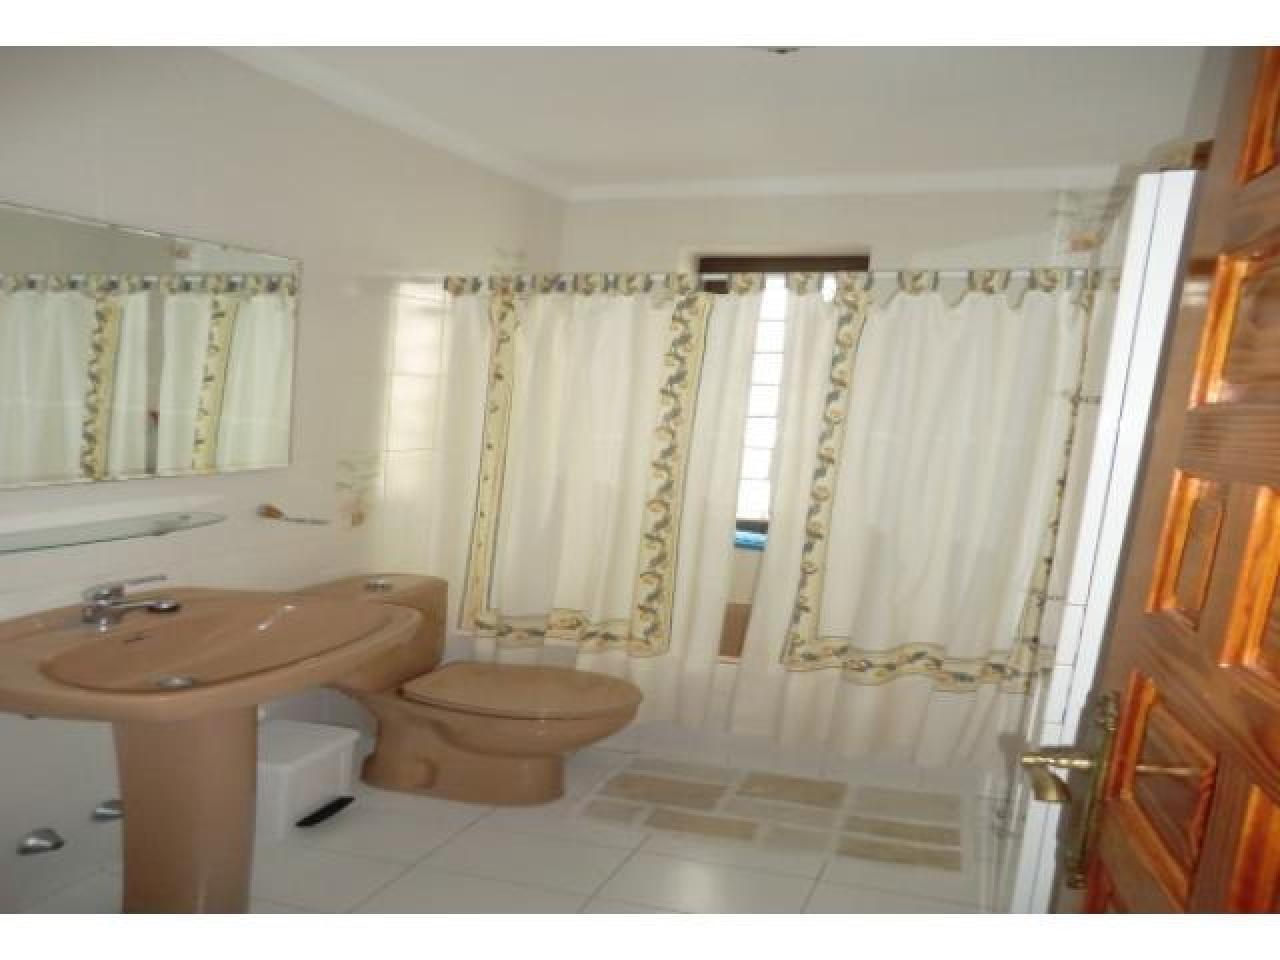 Real estate in Tenerife for sale » #157 - 2